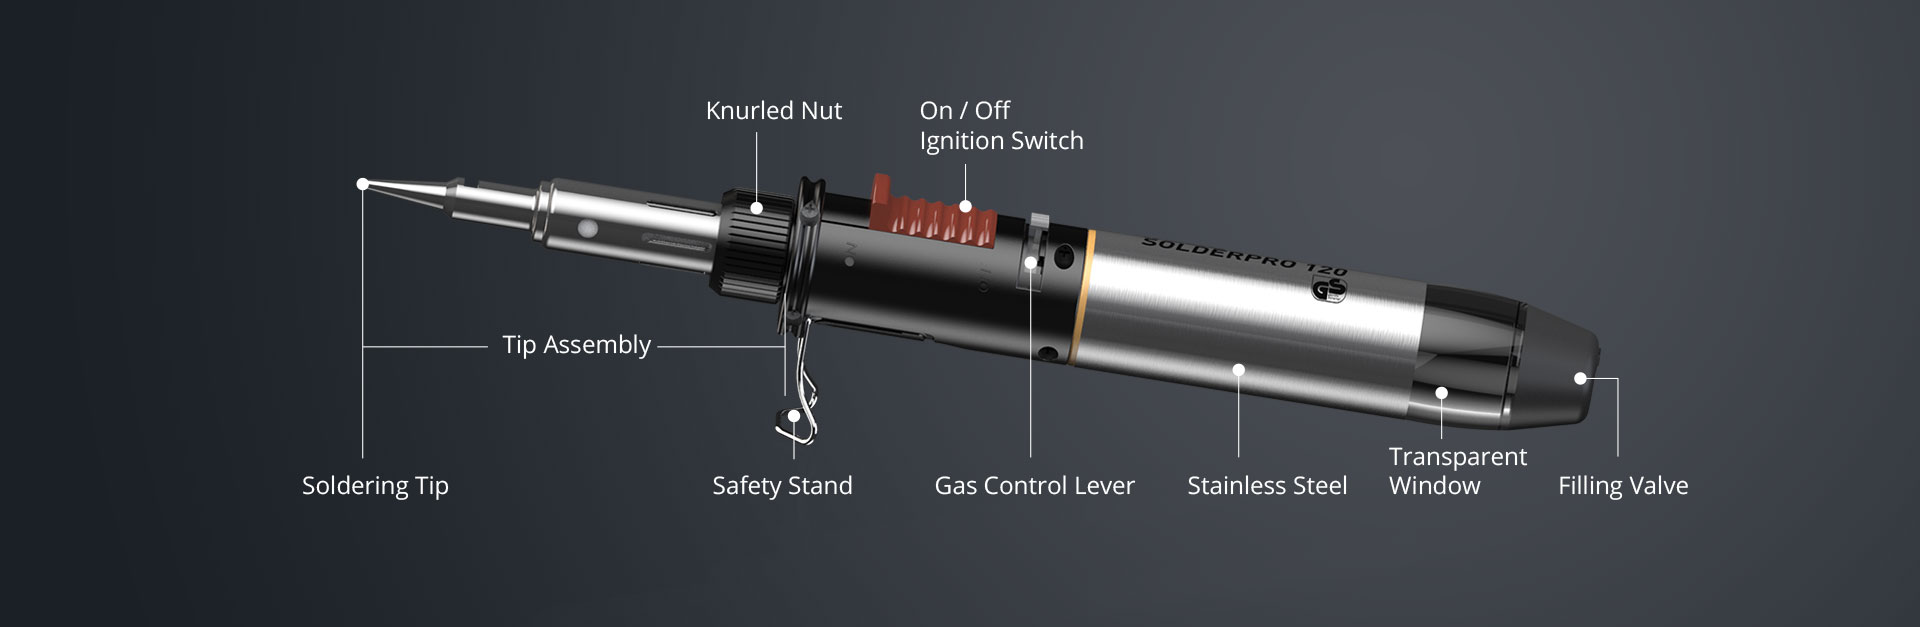 Horizontal Description of SOLDERPRO 120 Premium Professional Butane Soldering Iron from Pro-Iroda